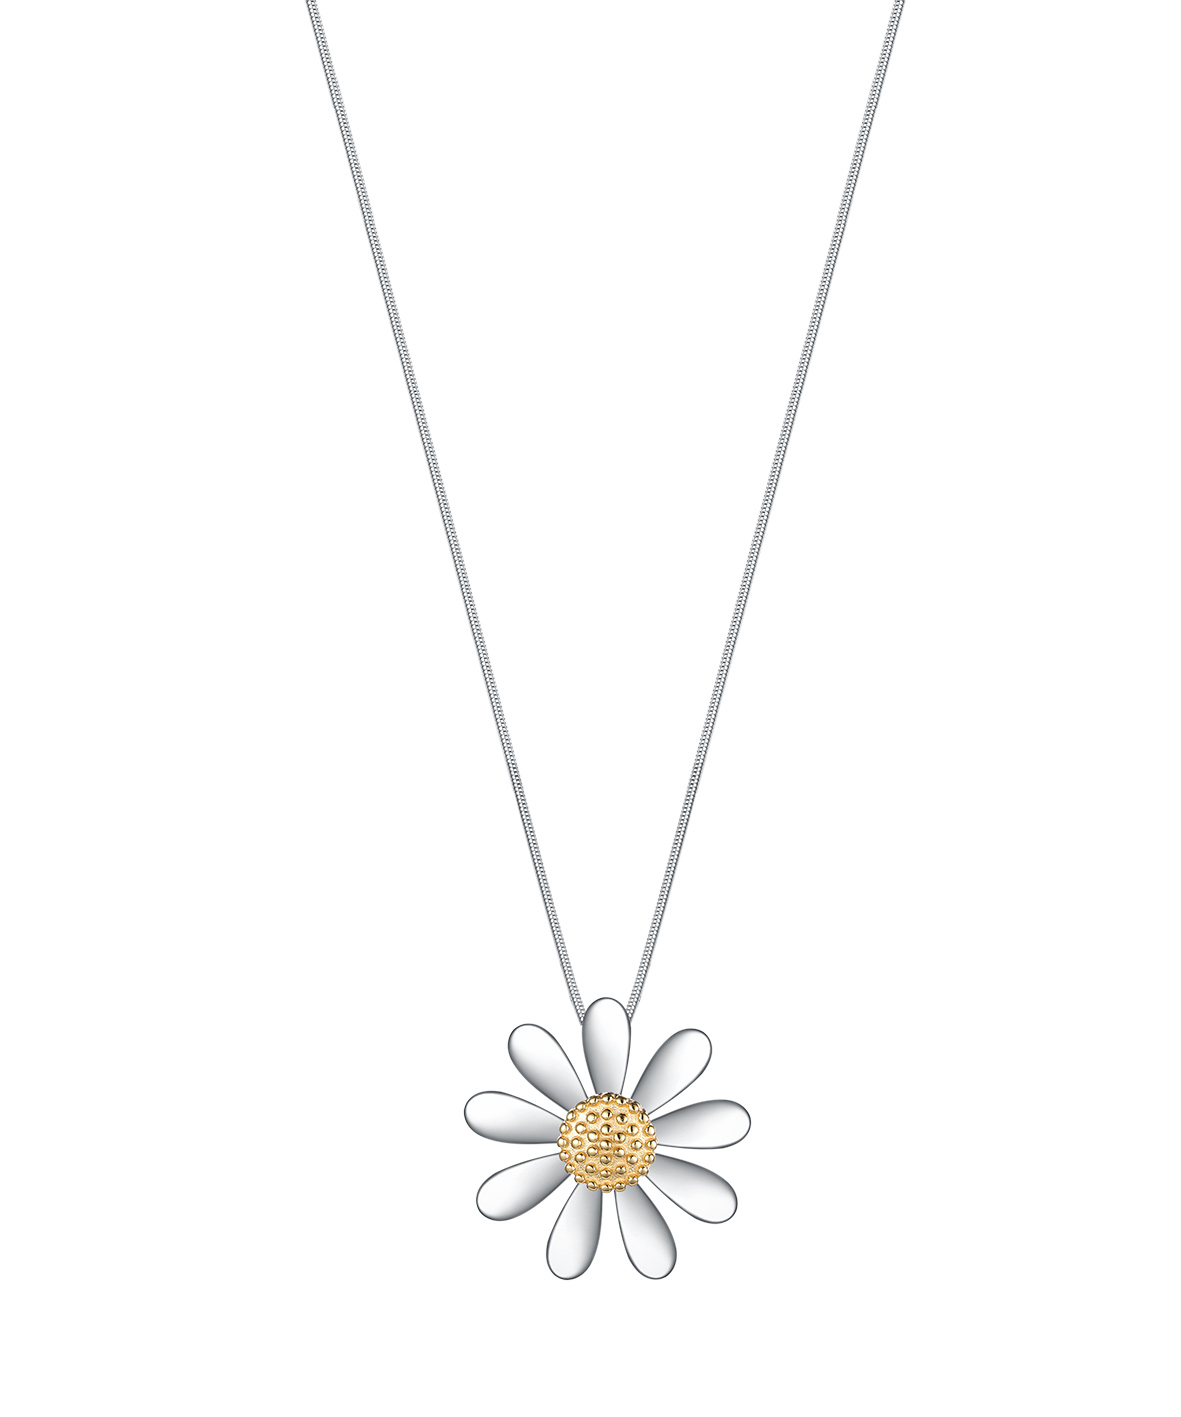 25mm Daisy Necklace